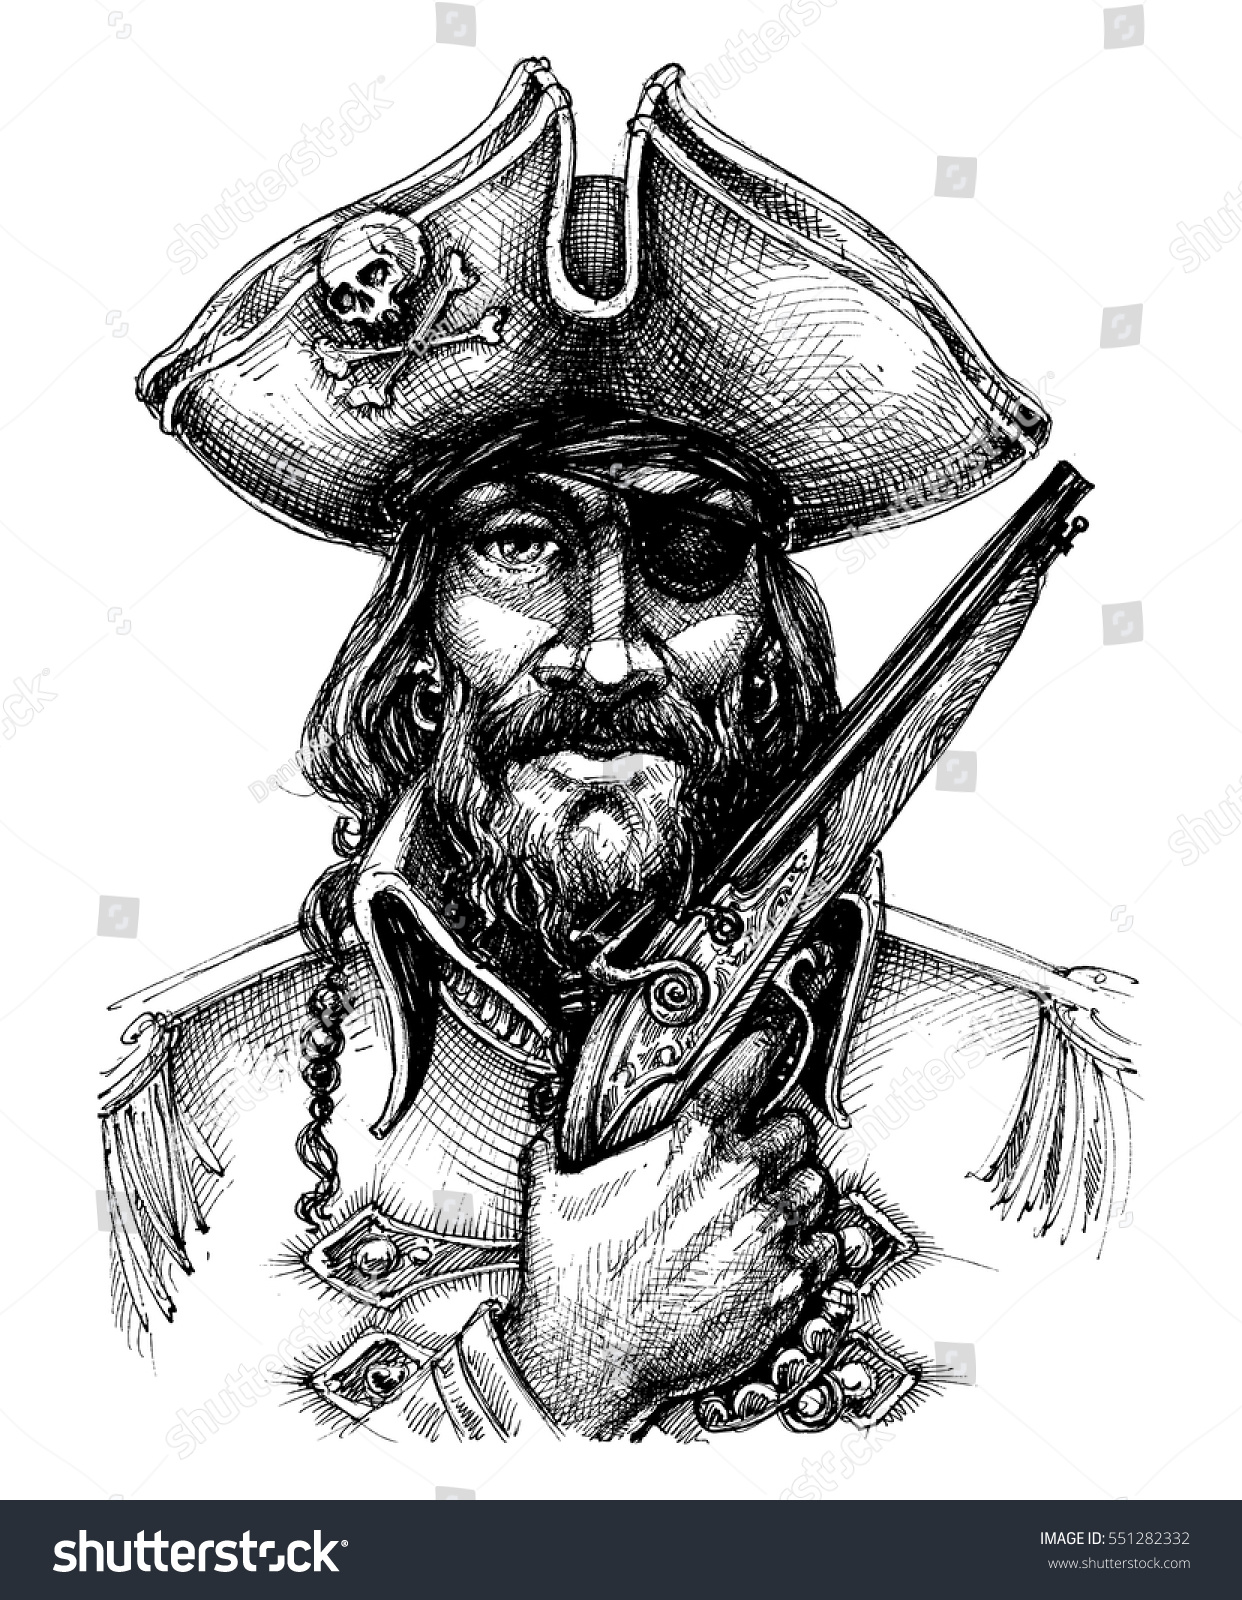 how to draw a pirate hat